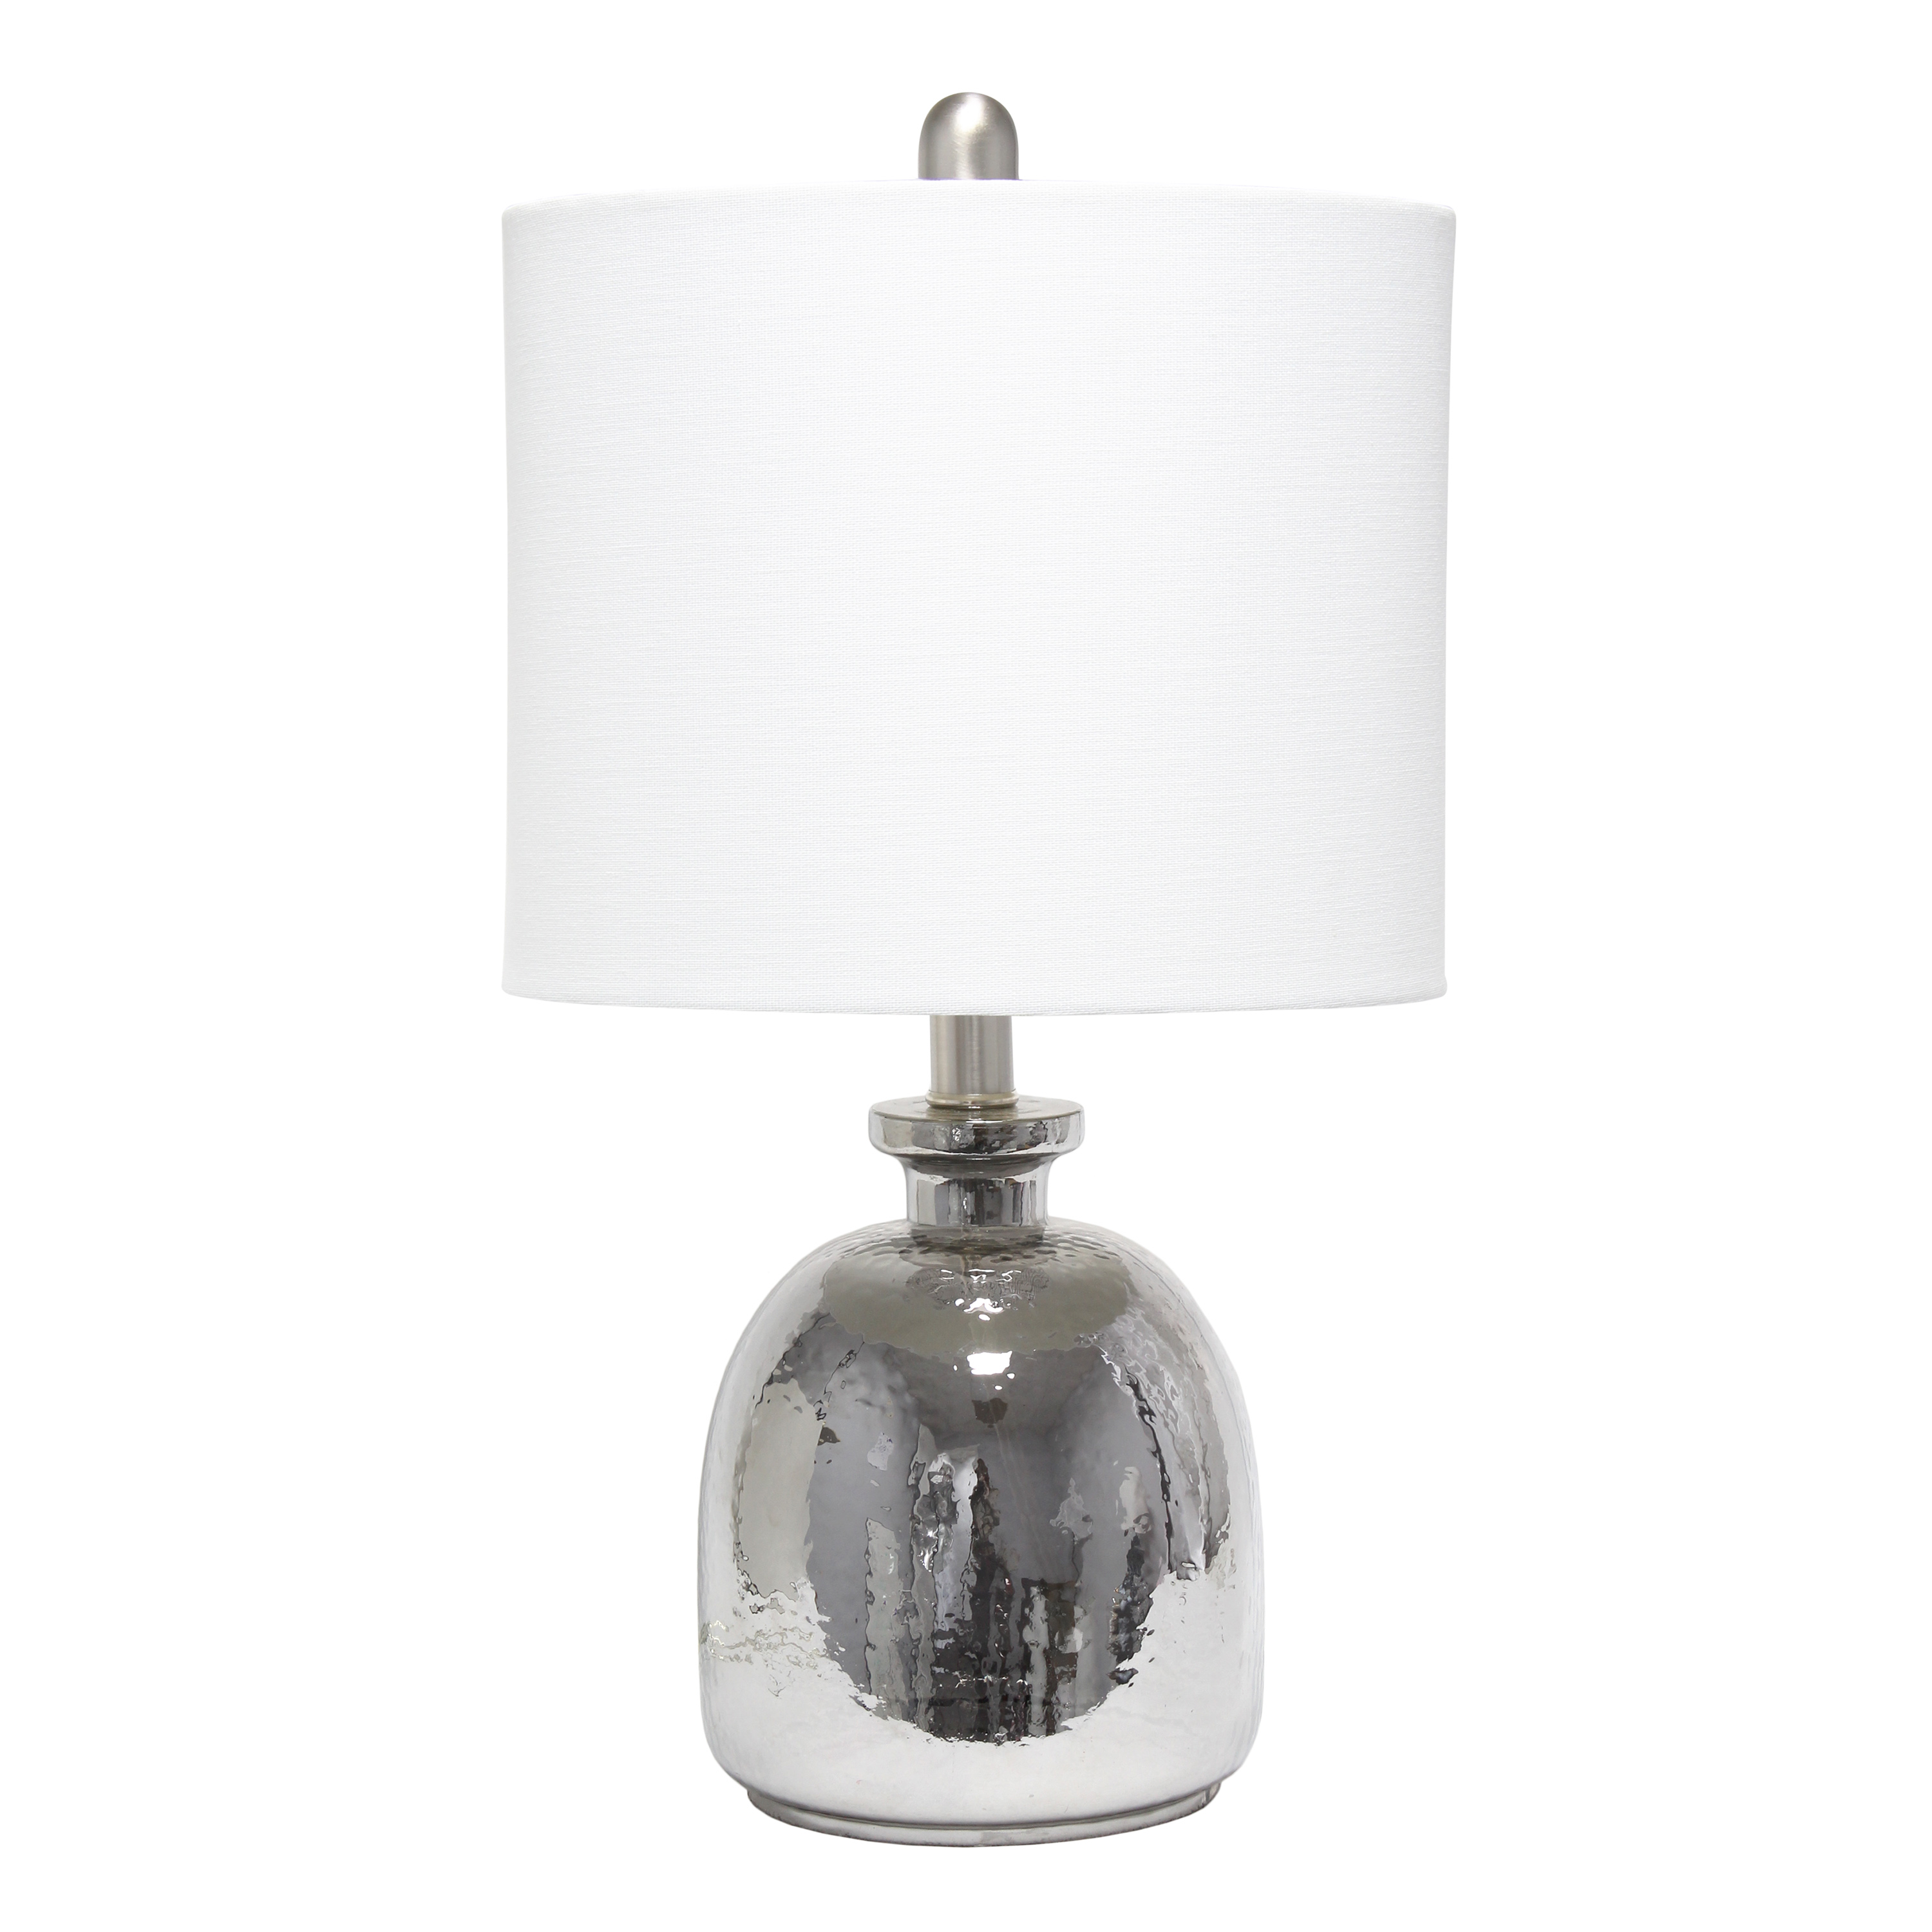 Lalia Home Metallic Gray Hammered Glass Jar Table Lamp with White Linen Shade